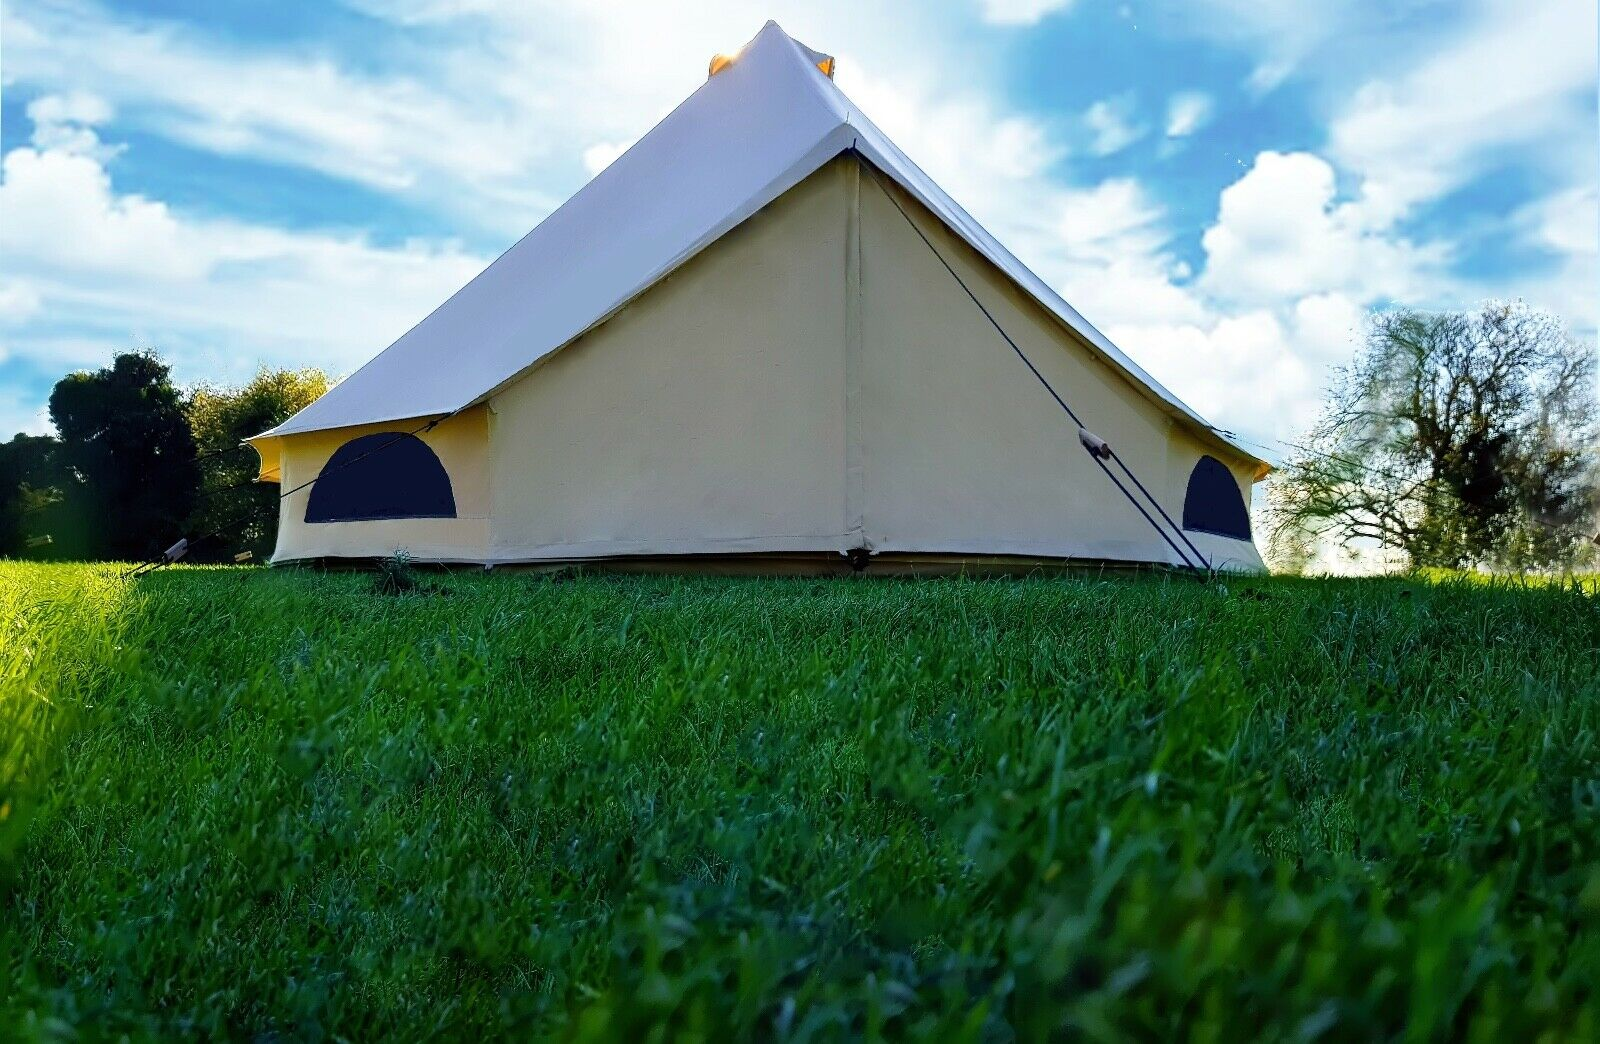 4m Cotton Canvas Bell Tent With Zipped In Groundsheet By Bell Tent Village